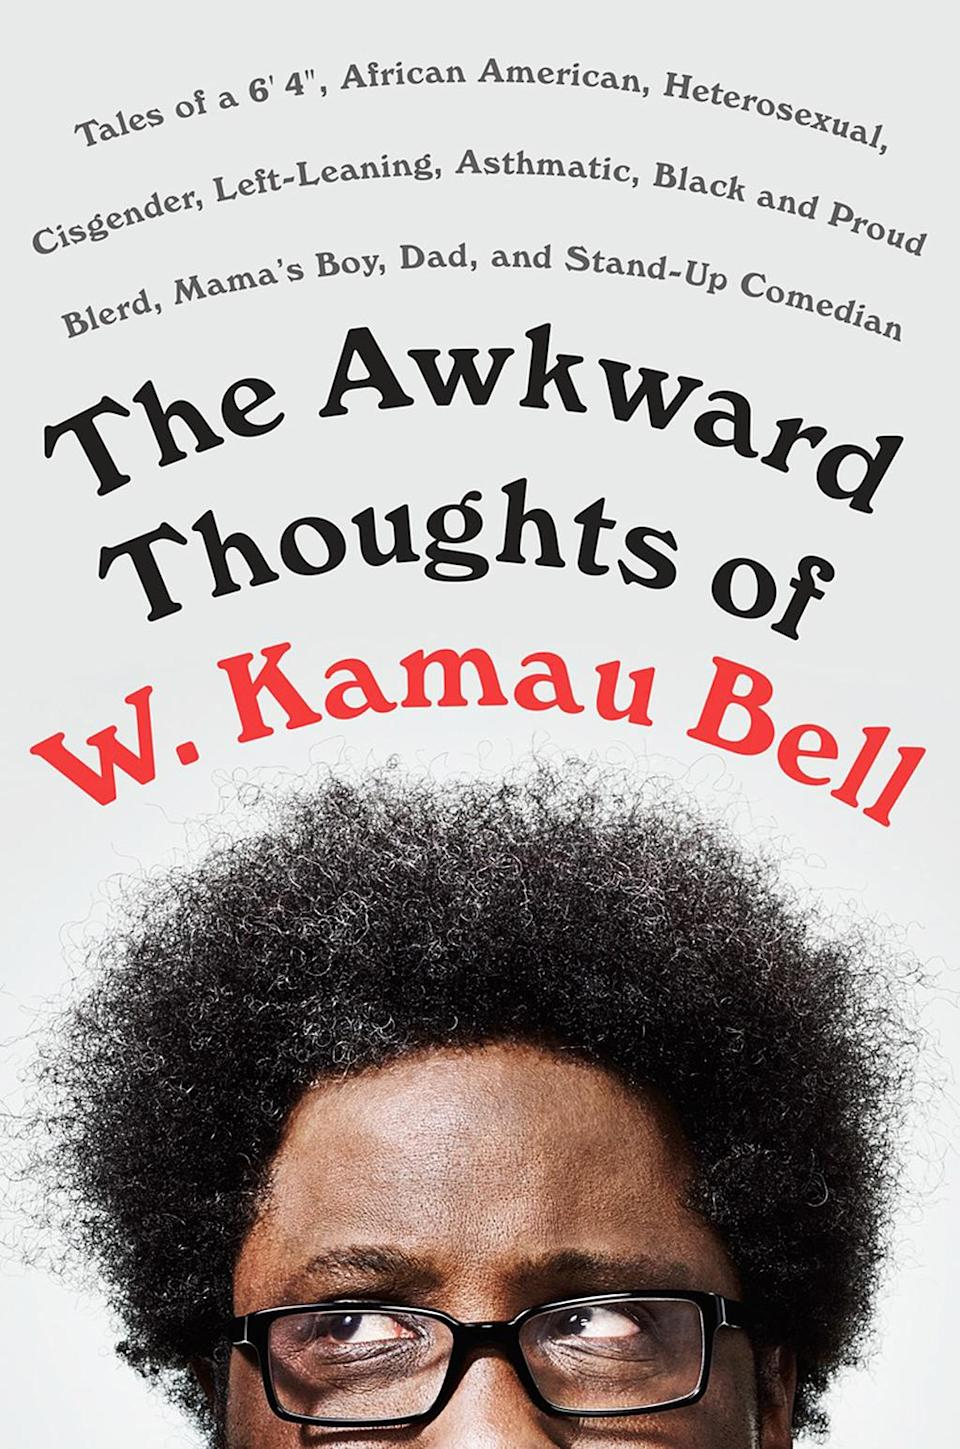 "<p>The host of FXX's <em>Totally Biased With W. Kamau Bell</em> and the Emmy-nominated CNN series <em>United Shades of America</em>, standup comedian Bell takes his unique political and social humor to book form with essays on everything from 9/11 and sports to his self-proclaimed awkward attitudes about white women and white guys. Plenty of his observational humor is aimed at himself, as he talks about being a black nerd, being a very tall black male, and, in one of the standout chapters, ""My Most Awkward Birthday Ever.""<br><br>(Penguin) </p>"